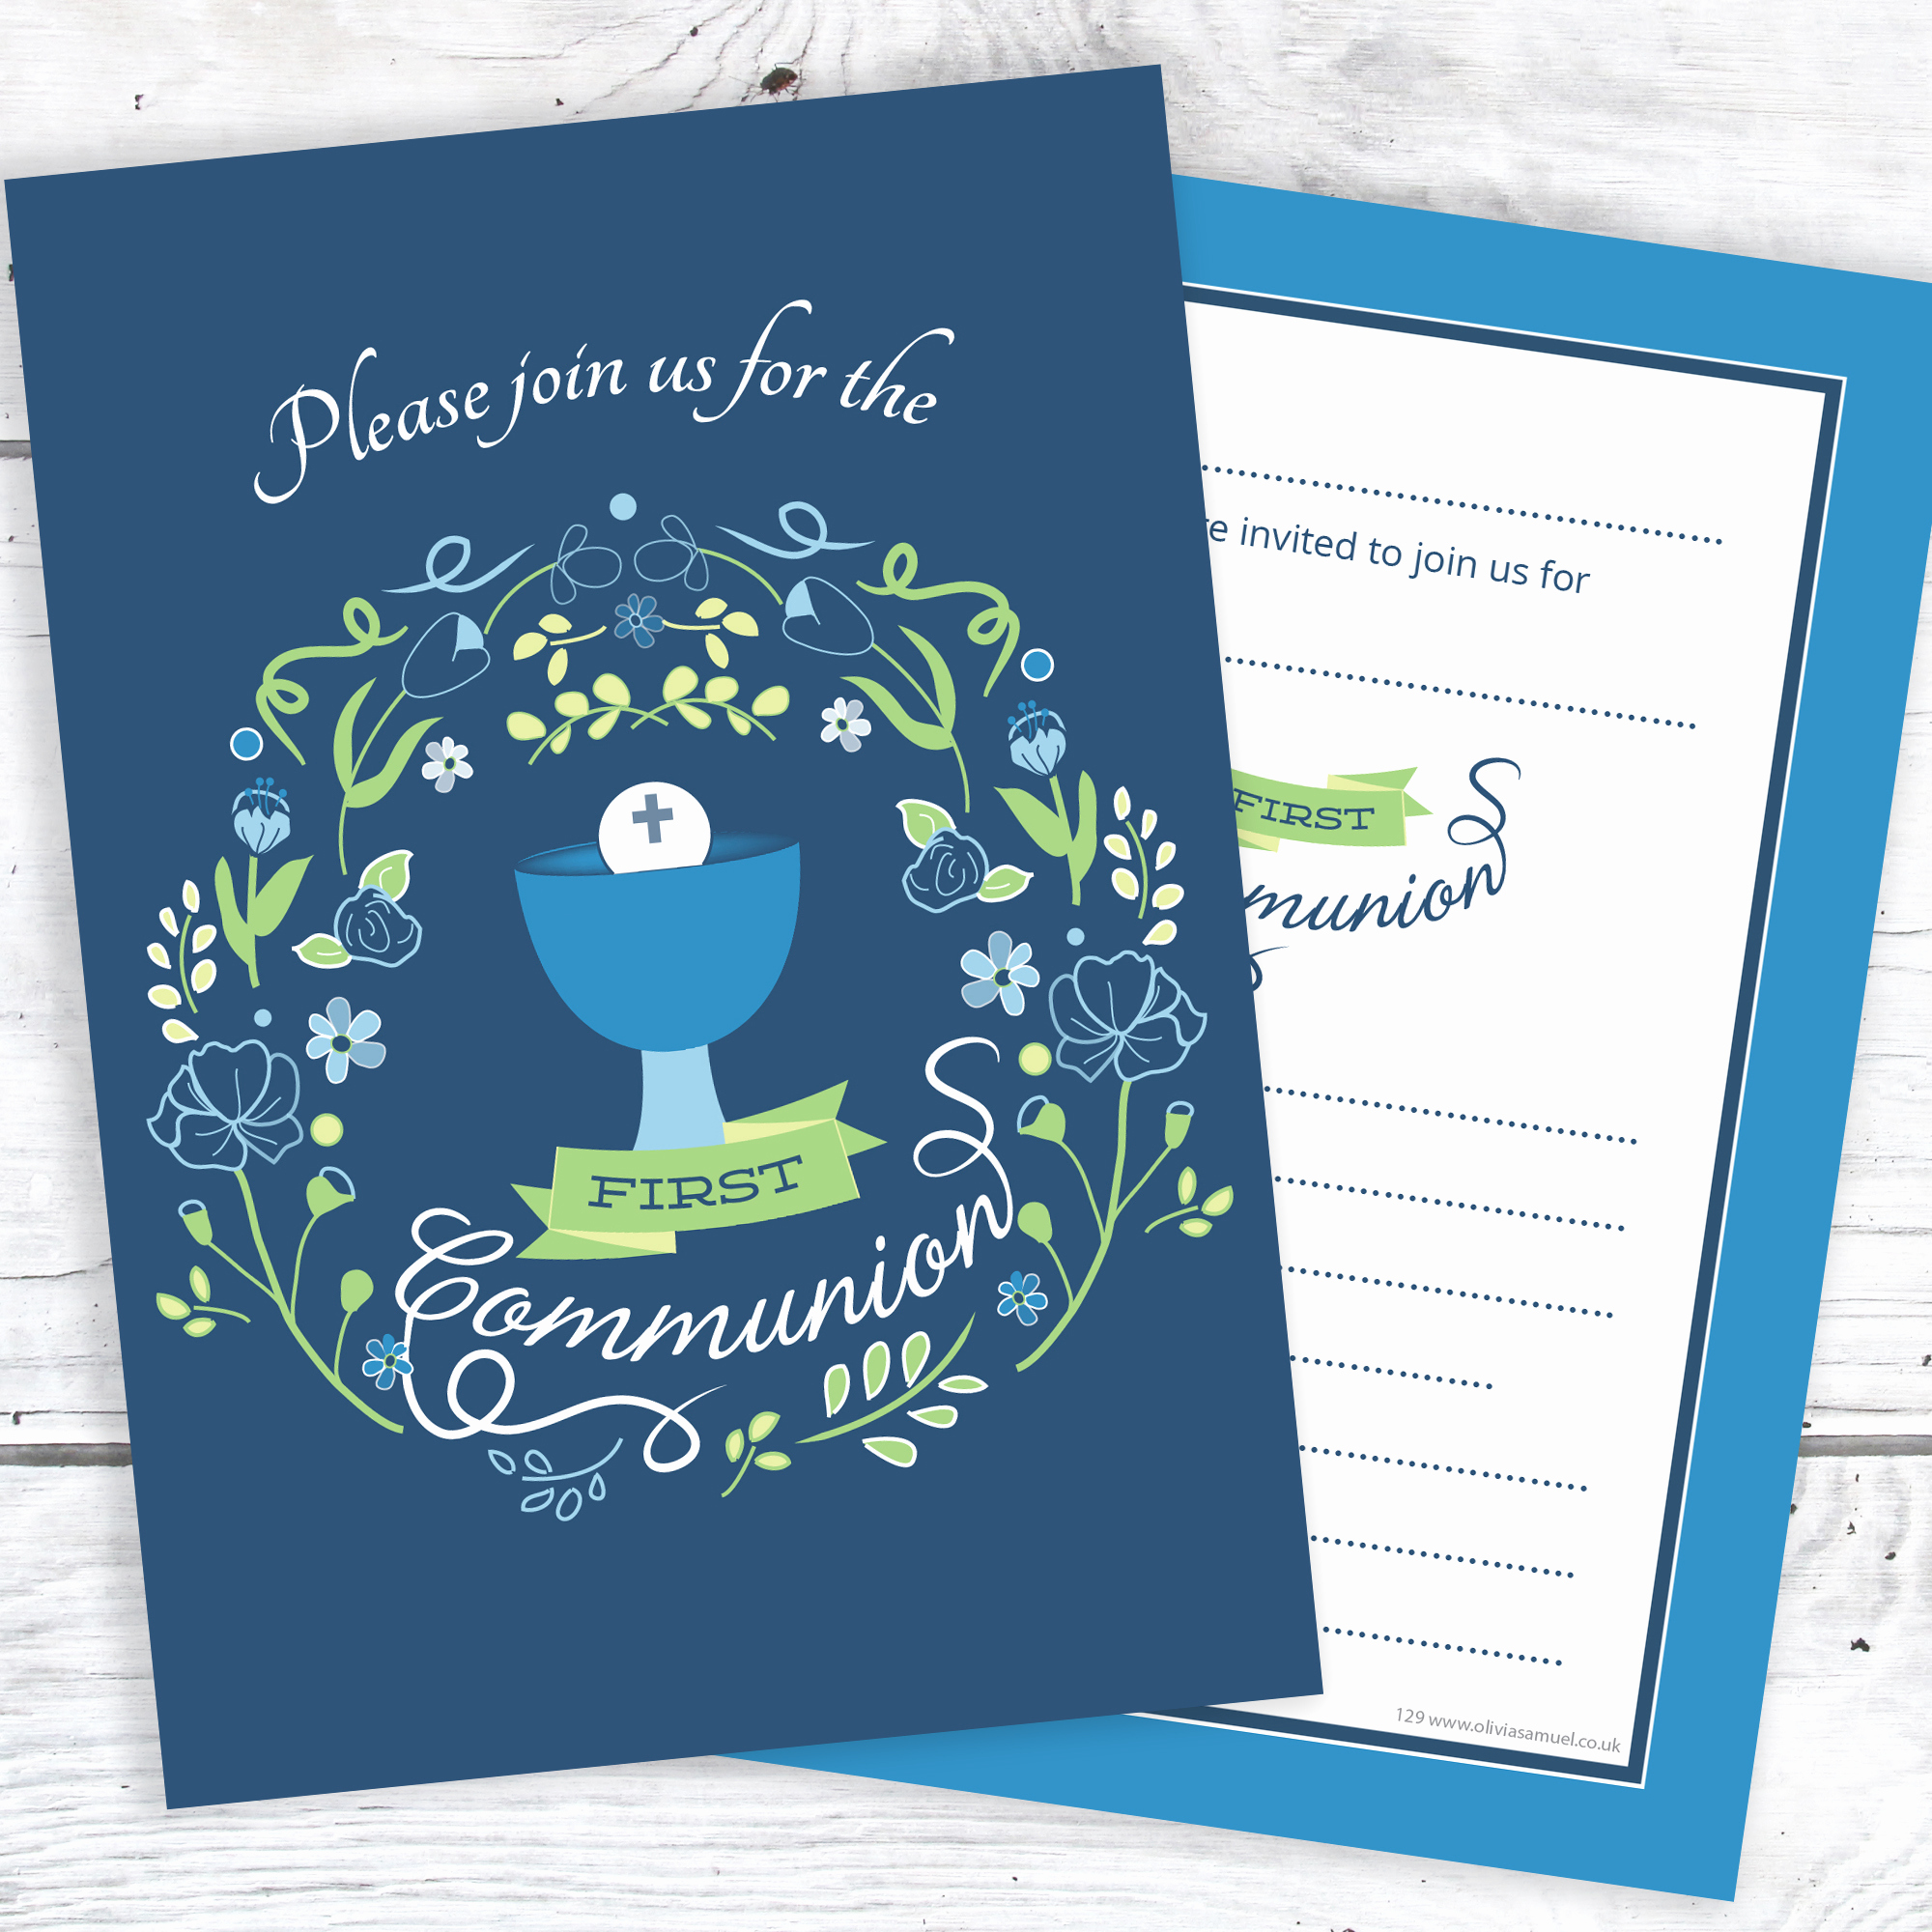 Boy First Communion Invitation Inspirational First Holy Munion Invitations – Boys Blue Design